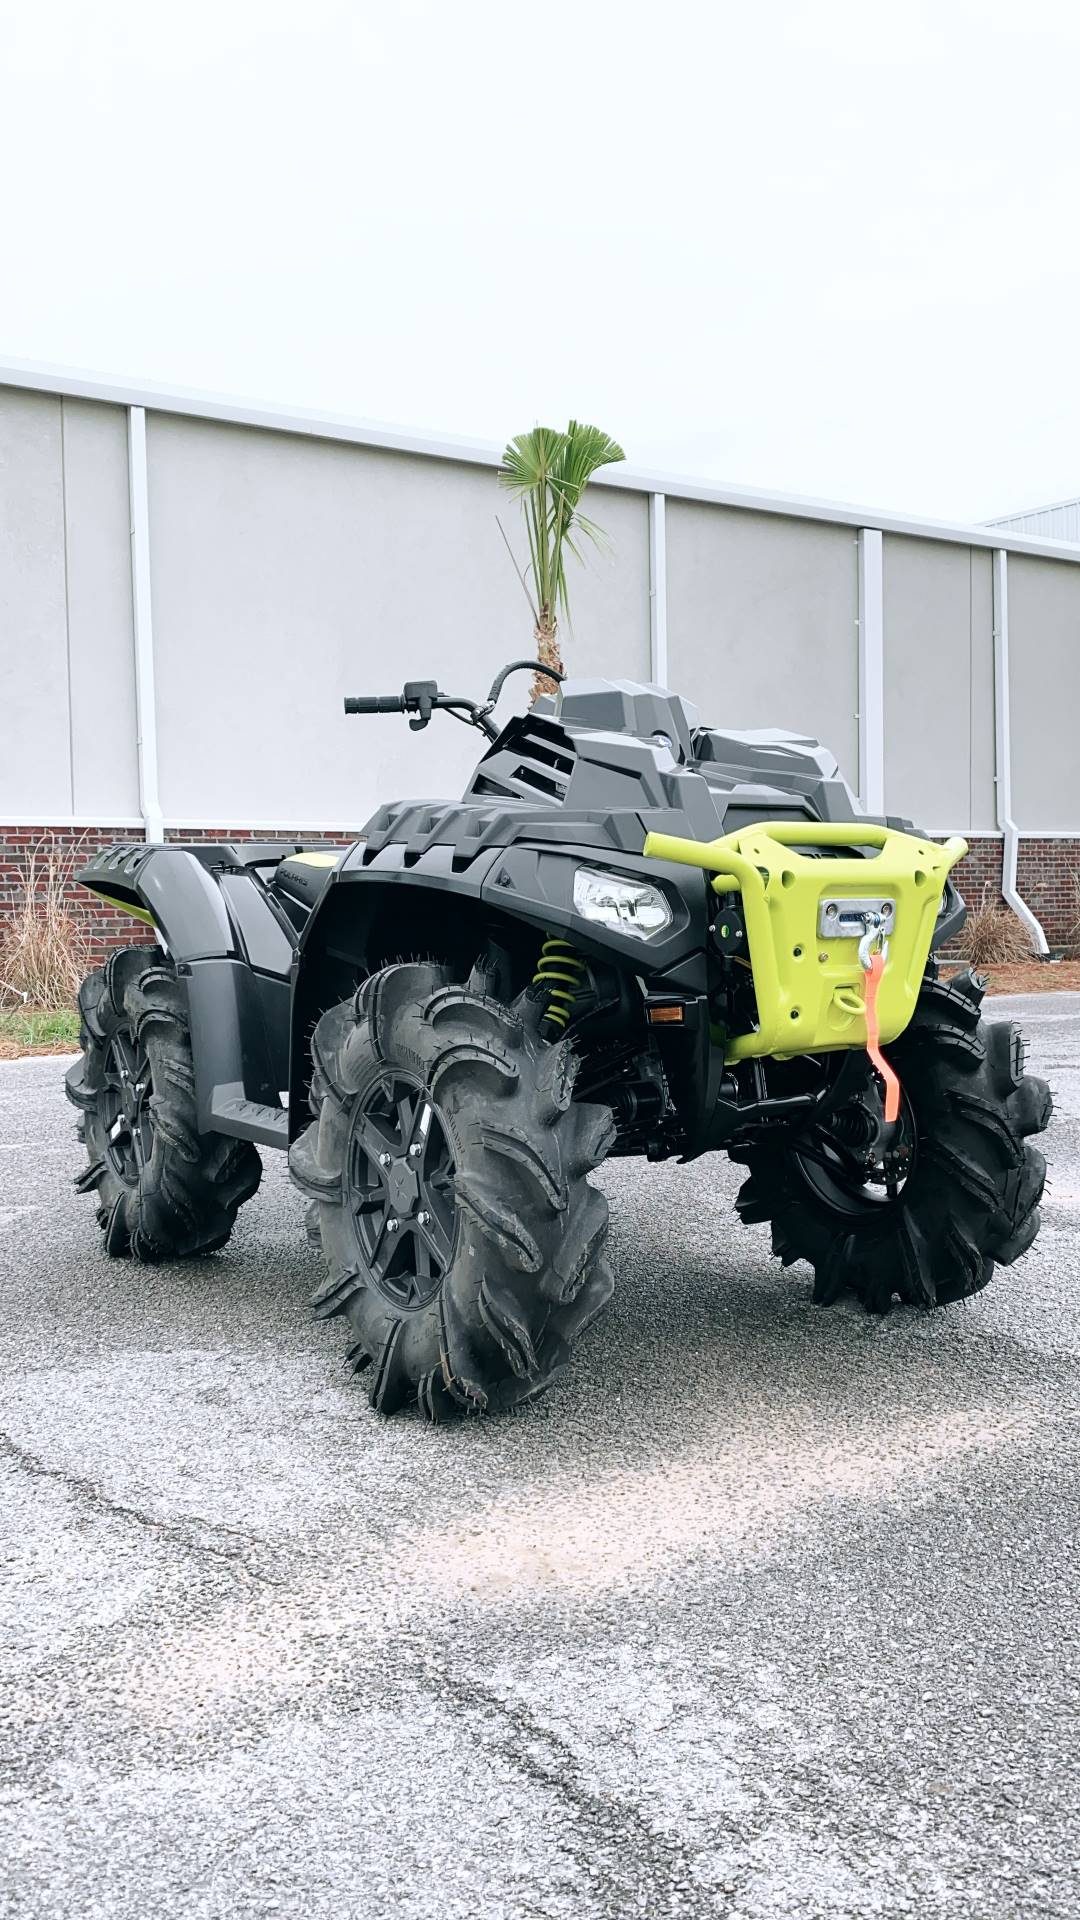 2020 Polaris Sportsman XP 1000 High Lifter Edition in Pascagoula, Mississippi - Photo 4